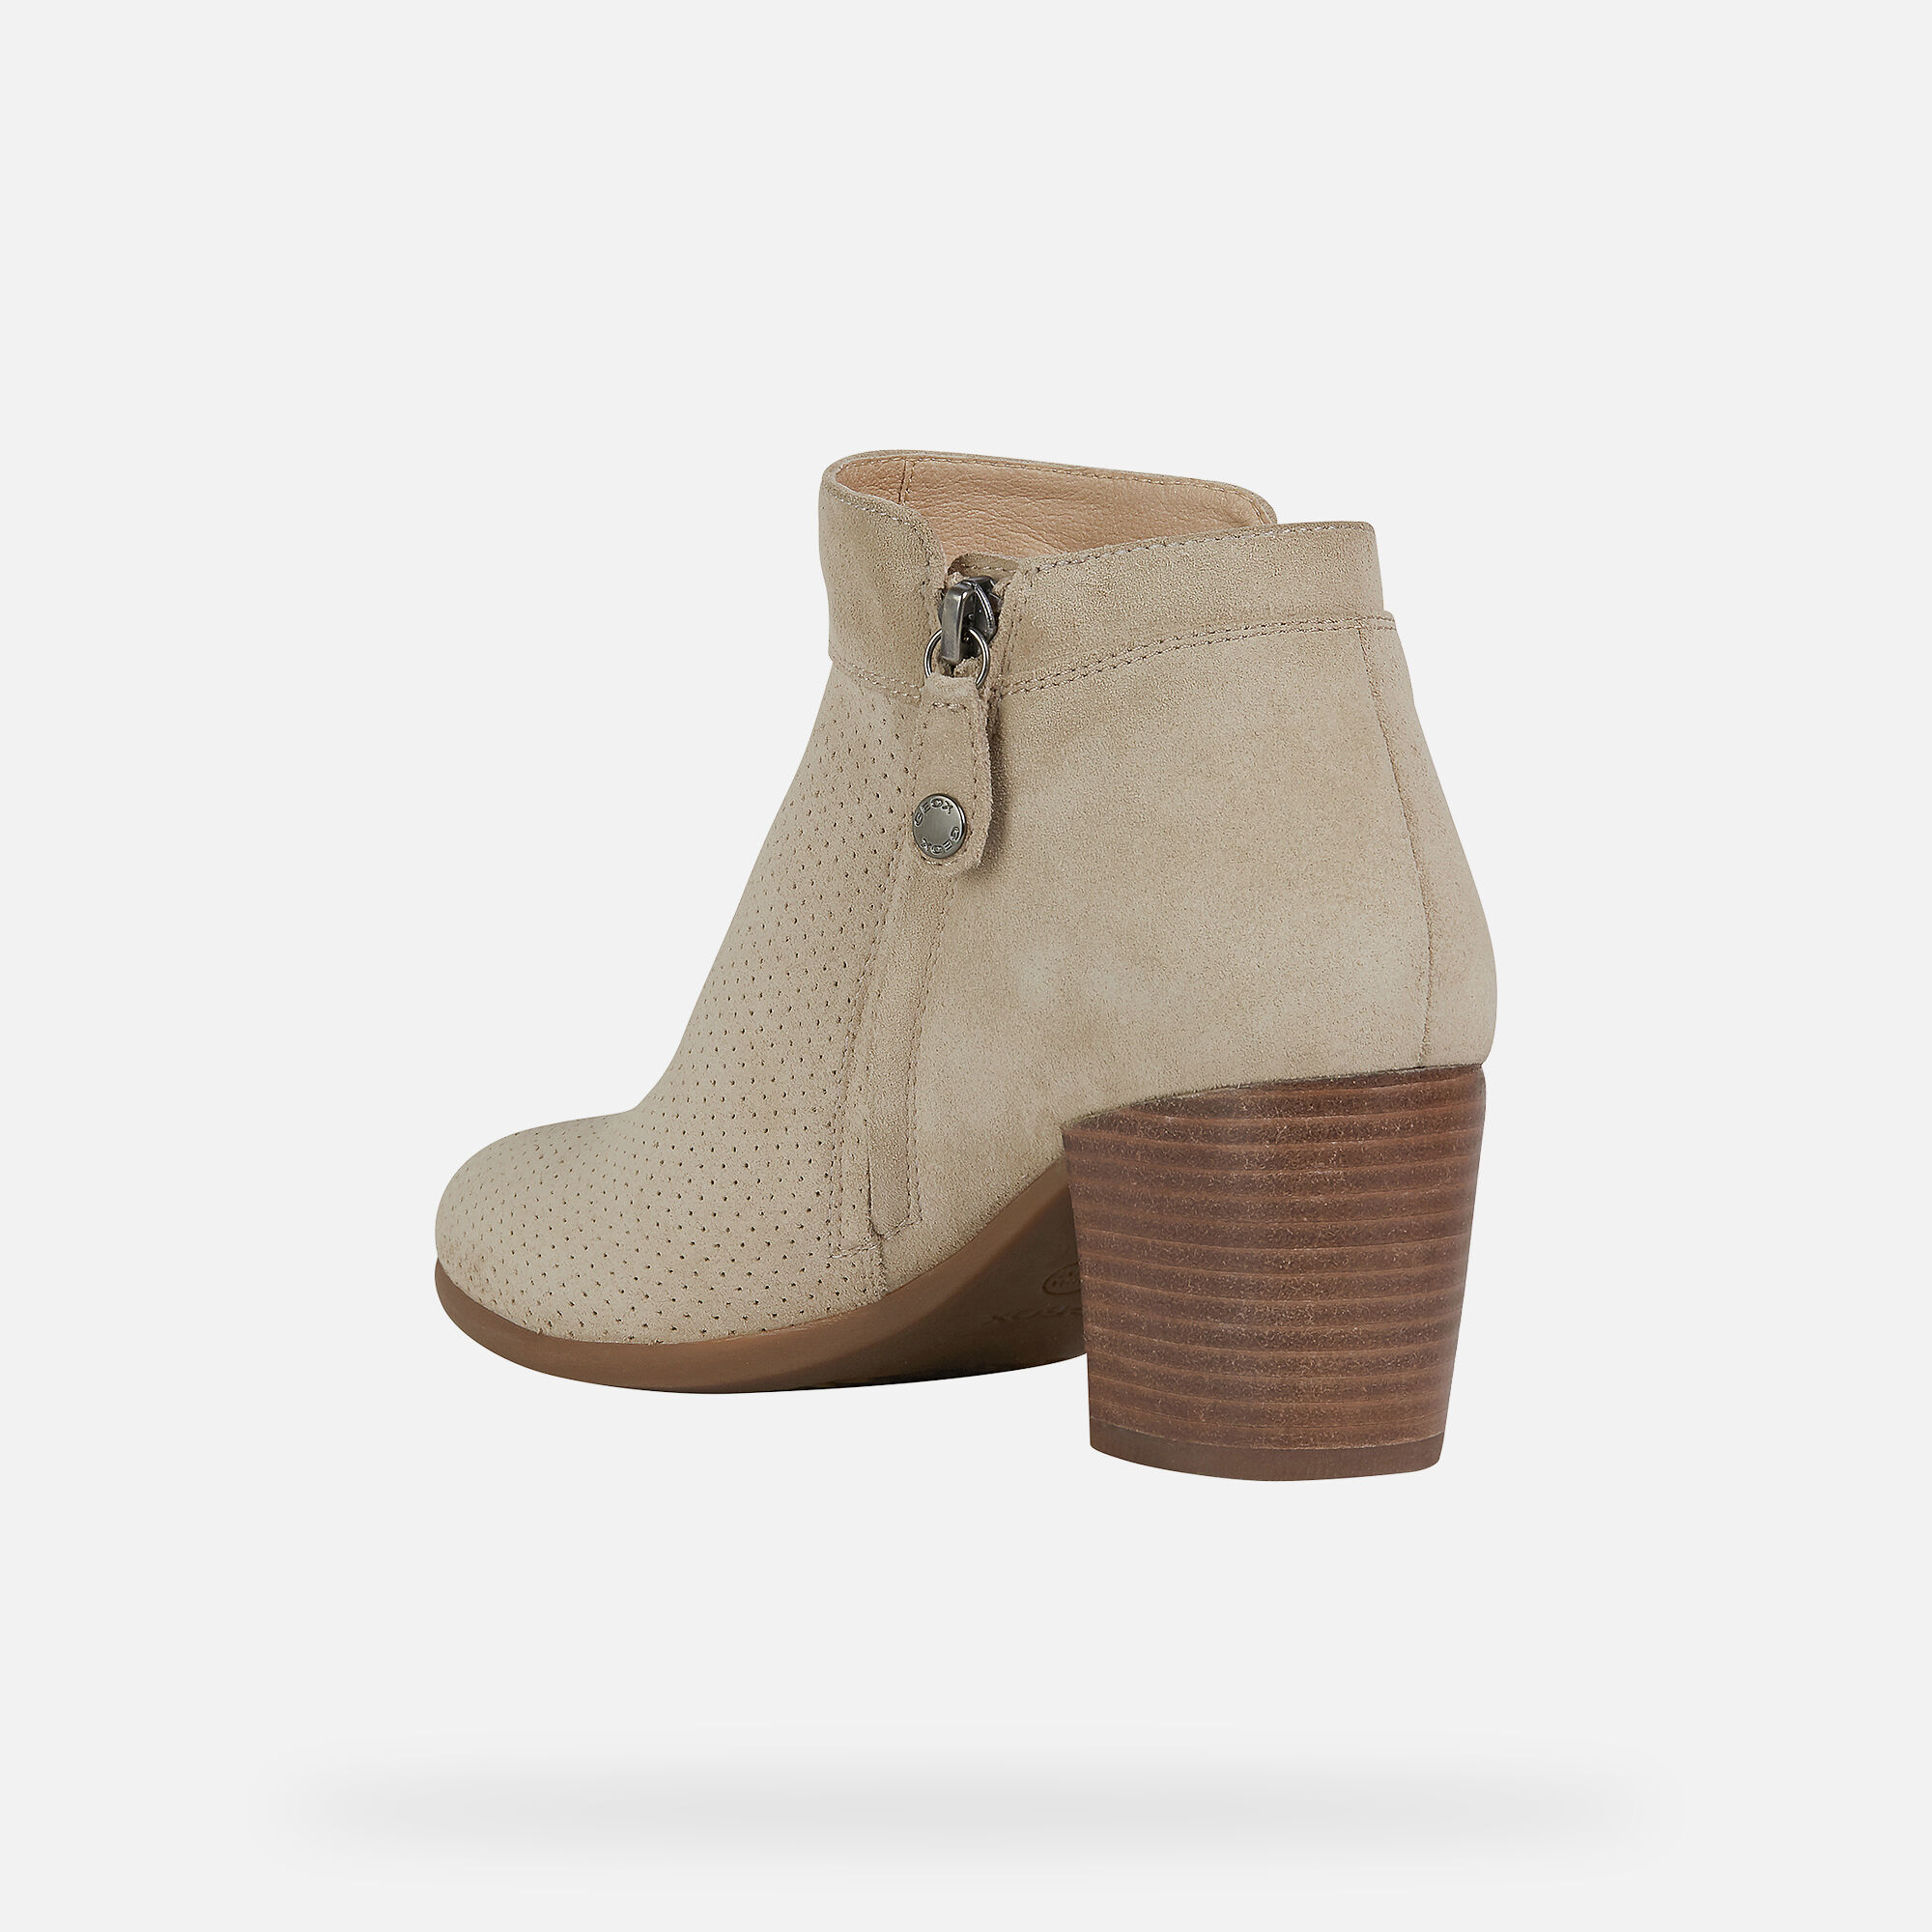 Geox NEW LUCINDA Woman: Lt Taupe Ankle